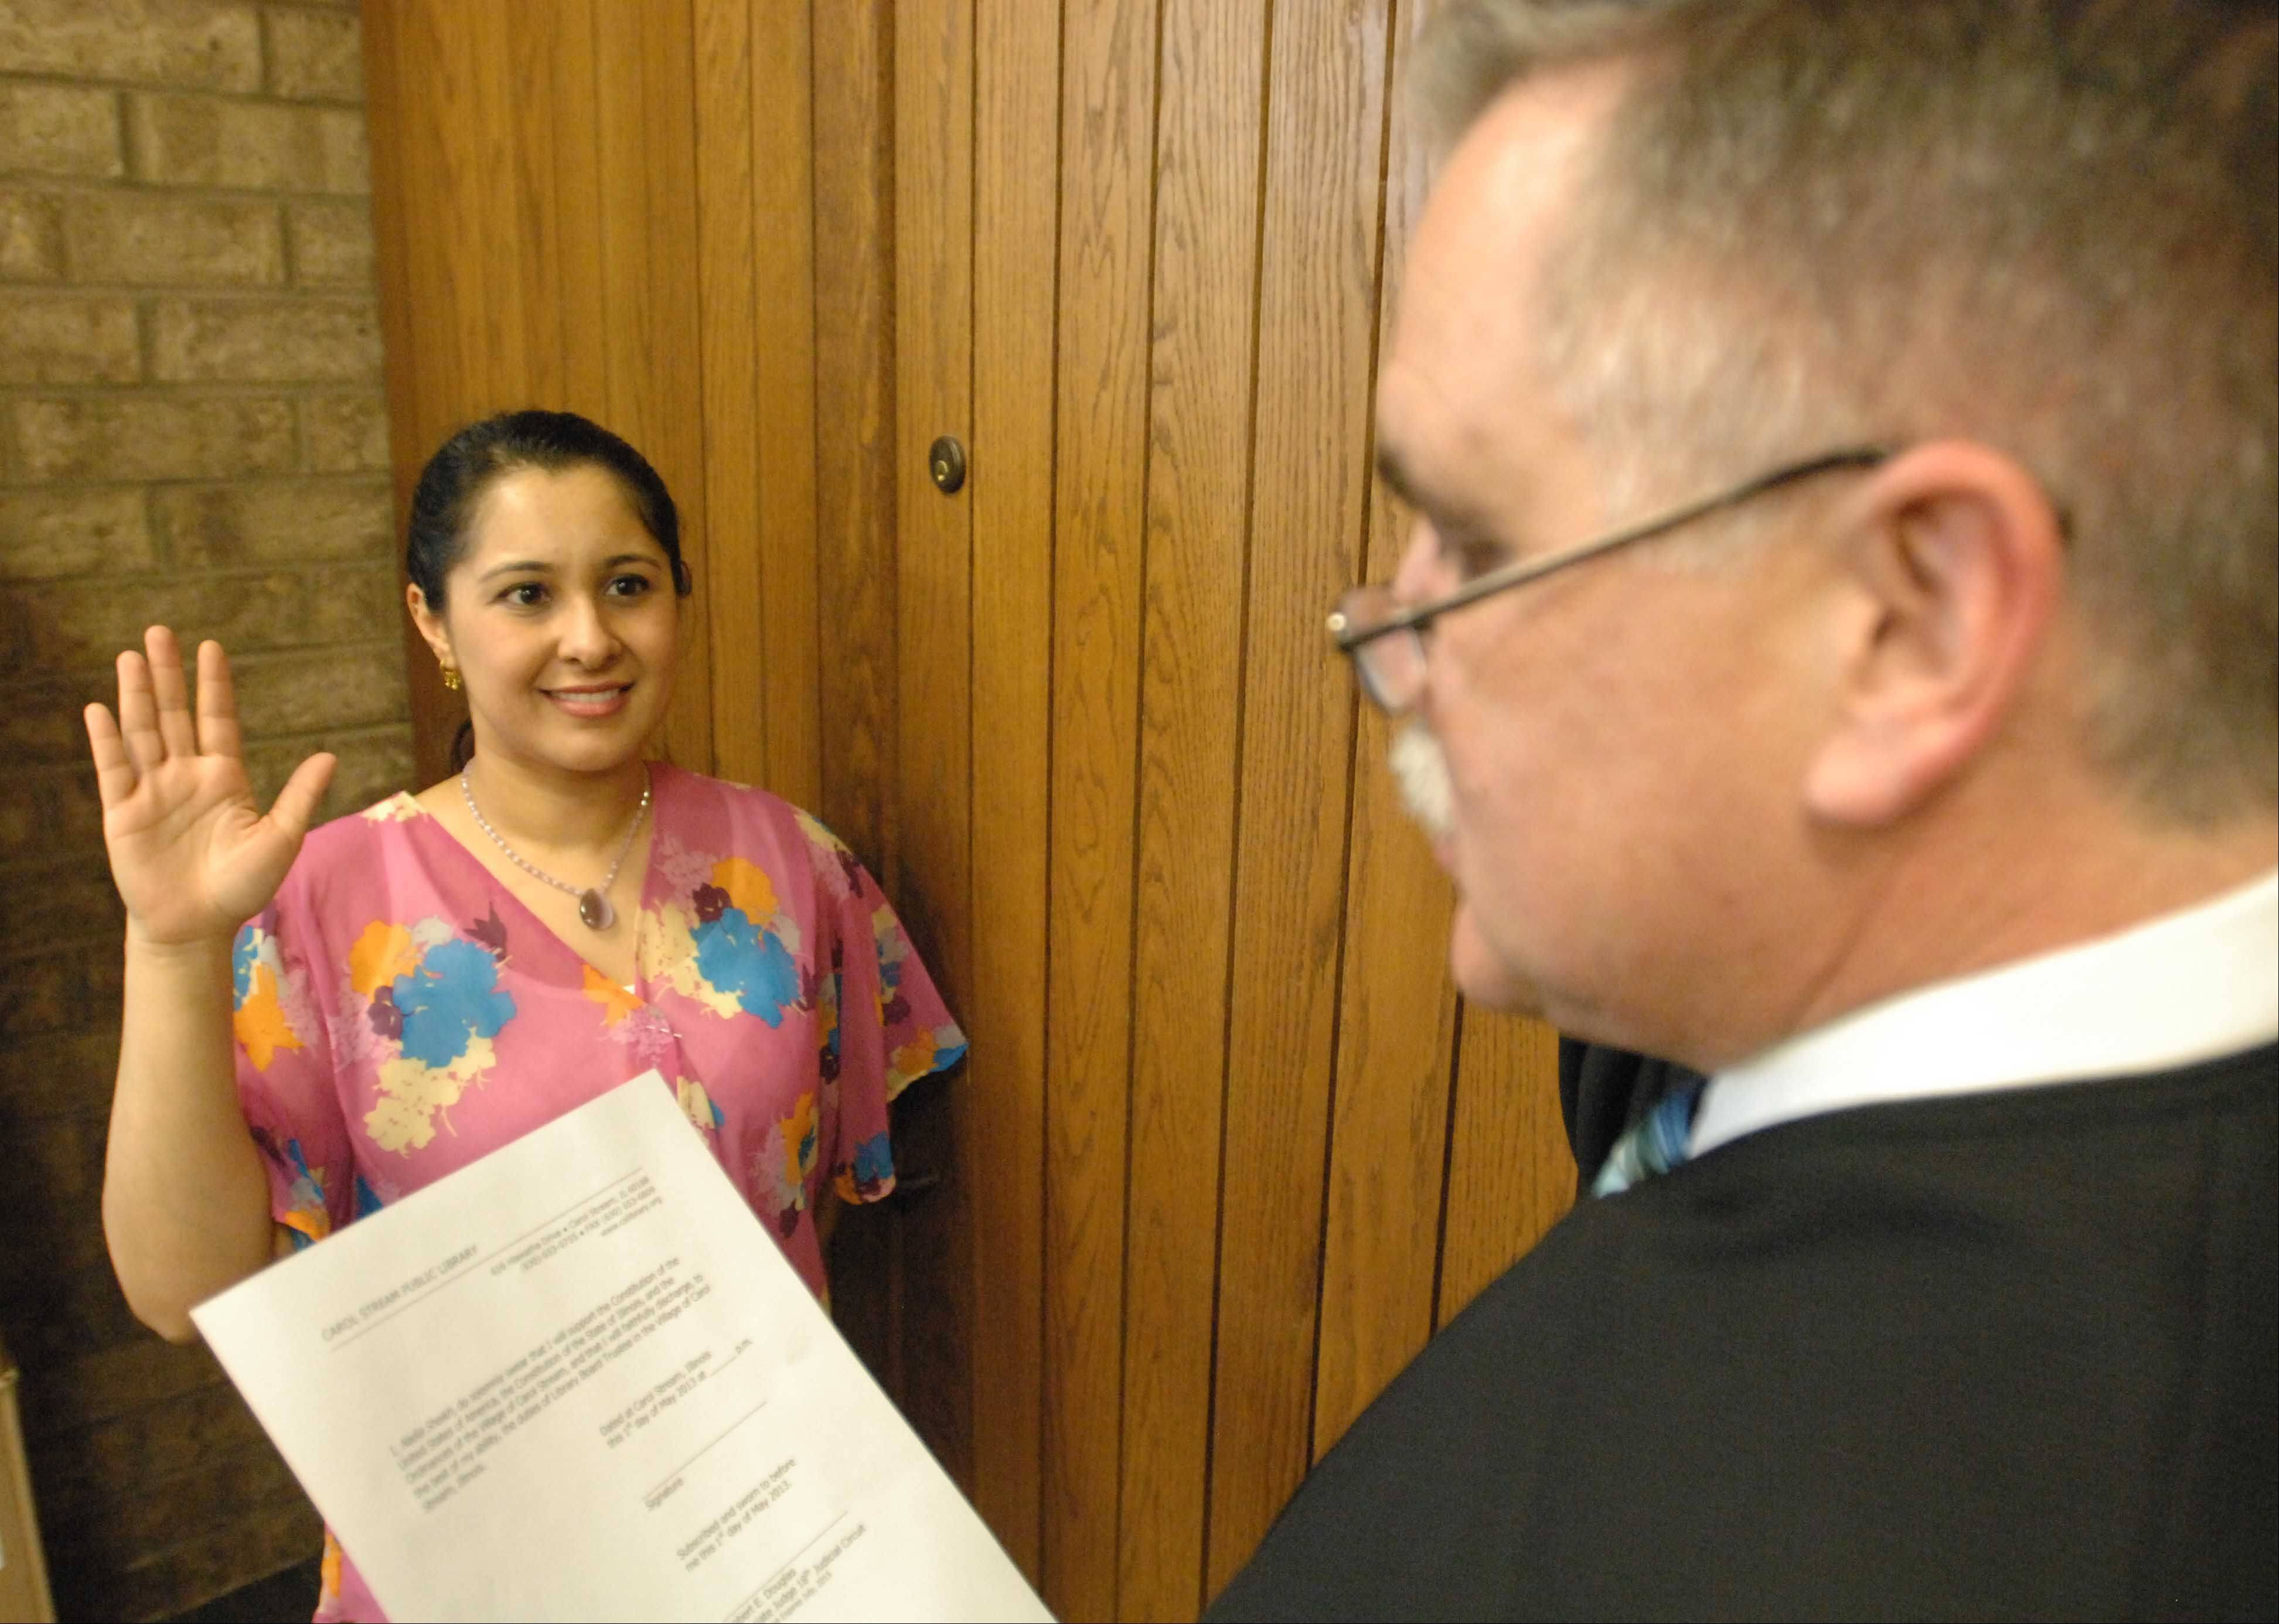 DuPage County Associate Judge Rob Douglas swears in Nadia Sheikh, one of the newly elected Carol Stream library board trustees, on Wednesday — two weeks earlier than scheduled so the new board could prevent the outgoing board's attempt to sell the library's Kuhn Road property.